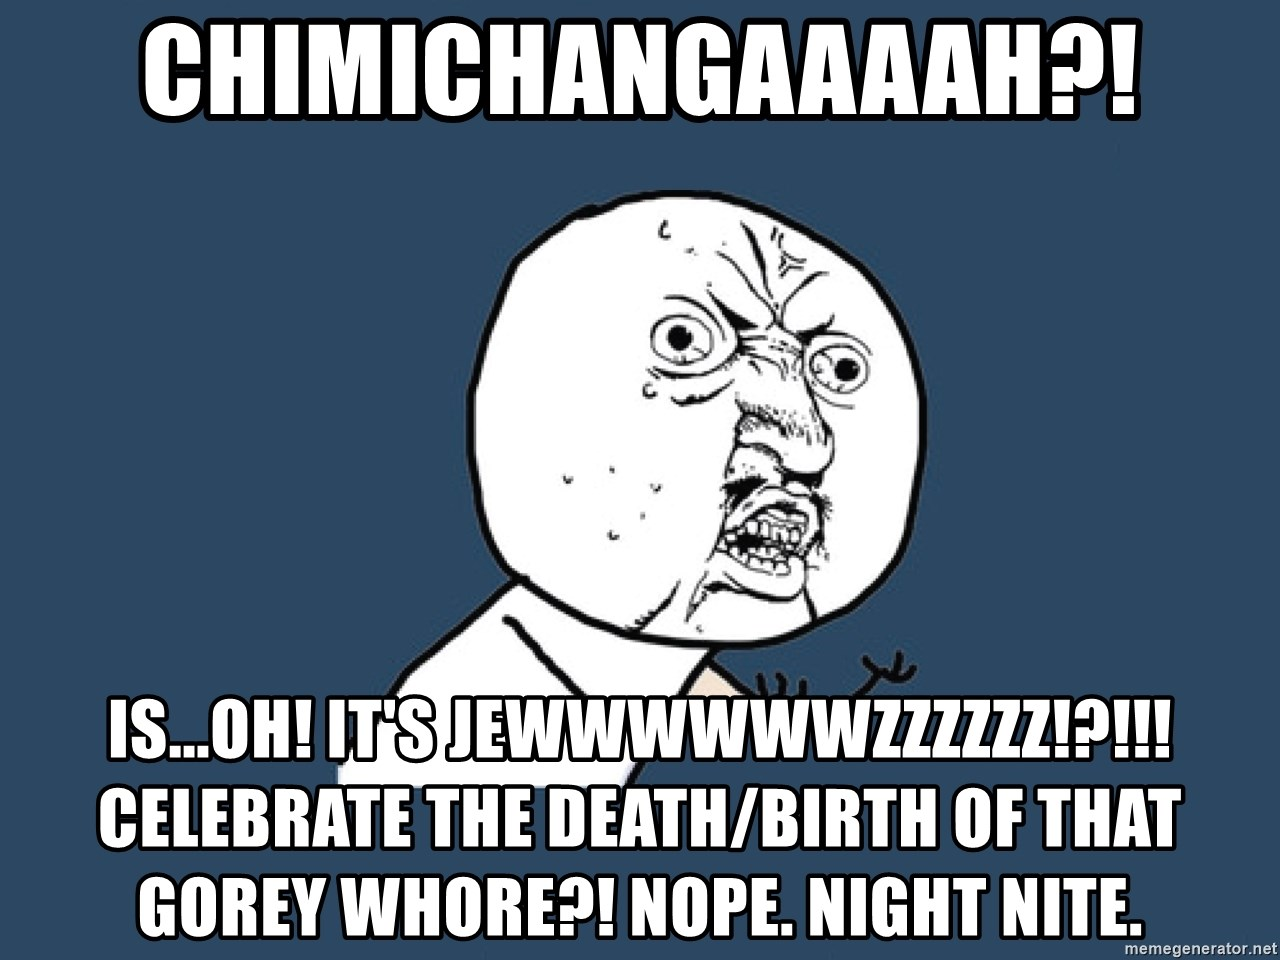 Y U No - Chimichangaaaah?! Is...oh! It's Jewwwwwwzzzzzz!?!!! CELEBRATE THE DEATH/BIRTH OF THAT GOREY WHORE?! Nope. NIGHT nite.